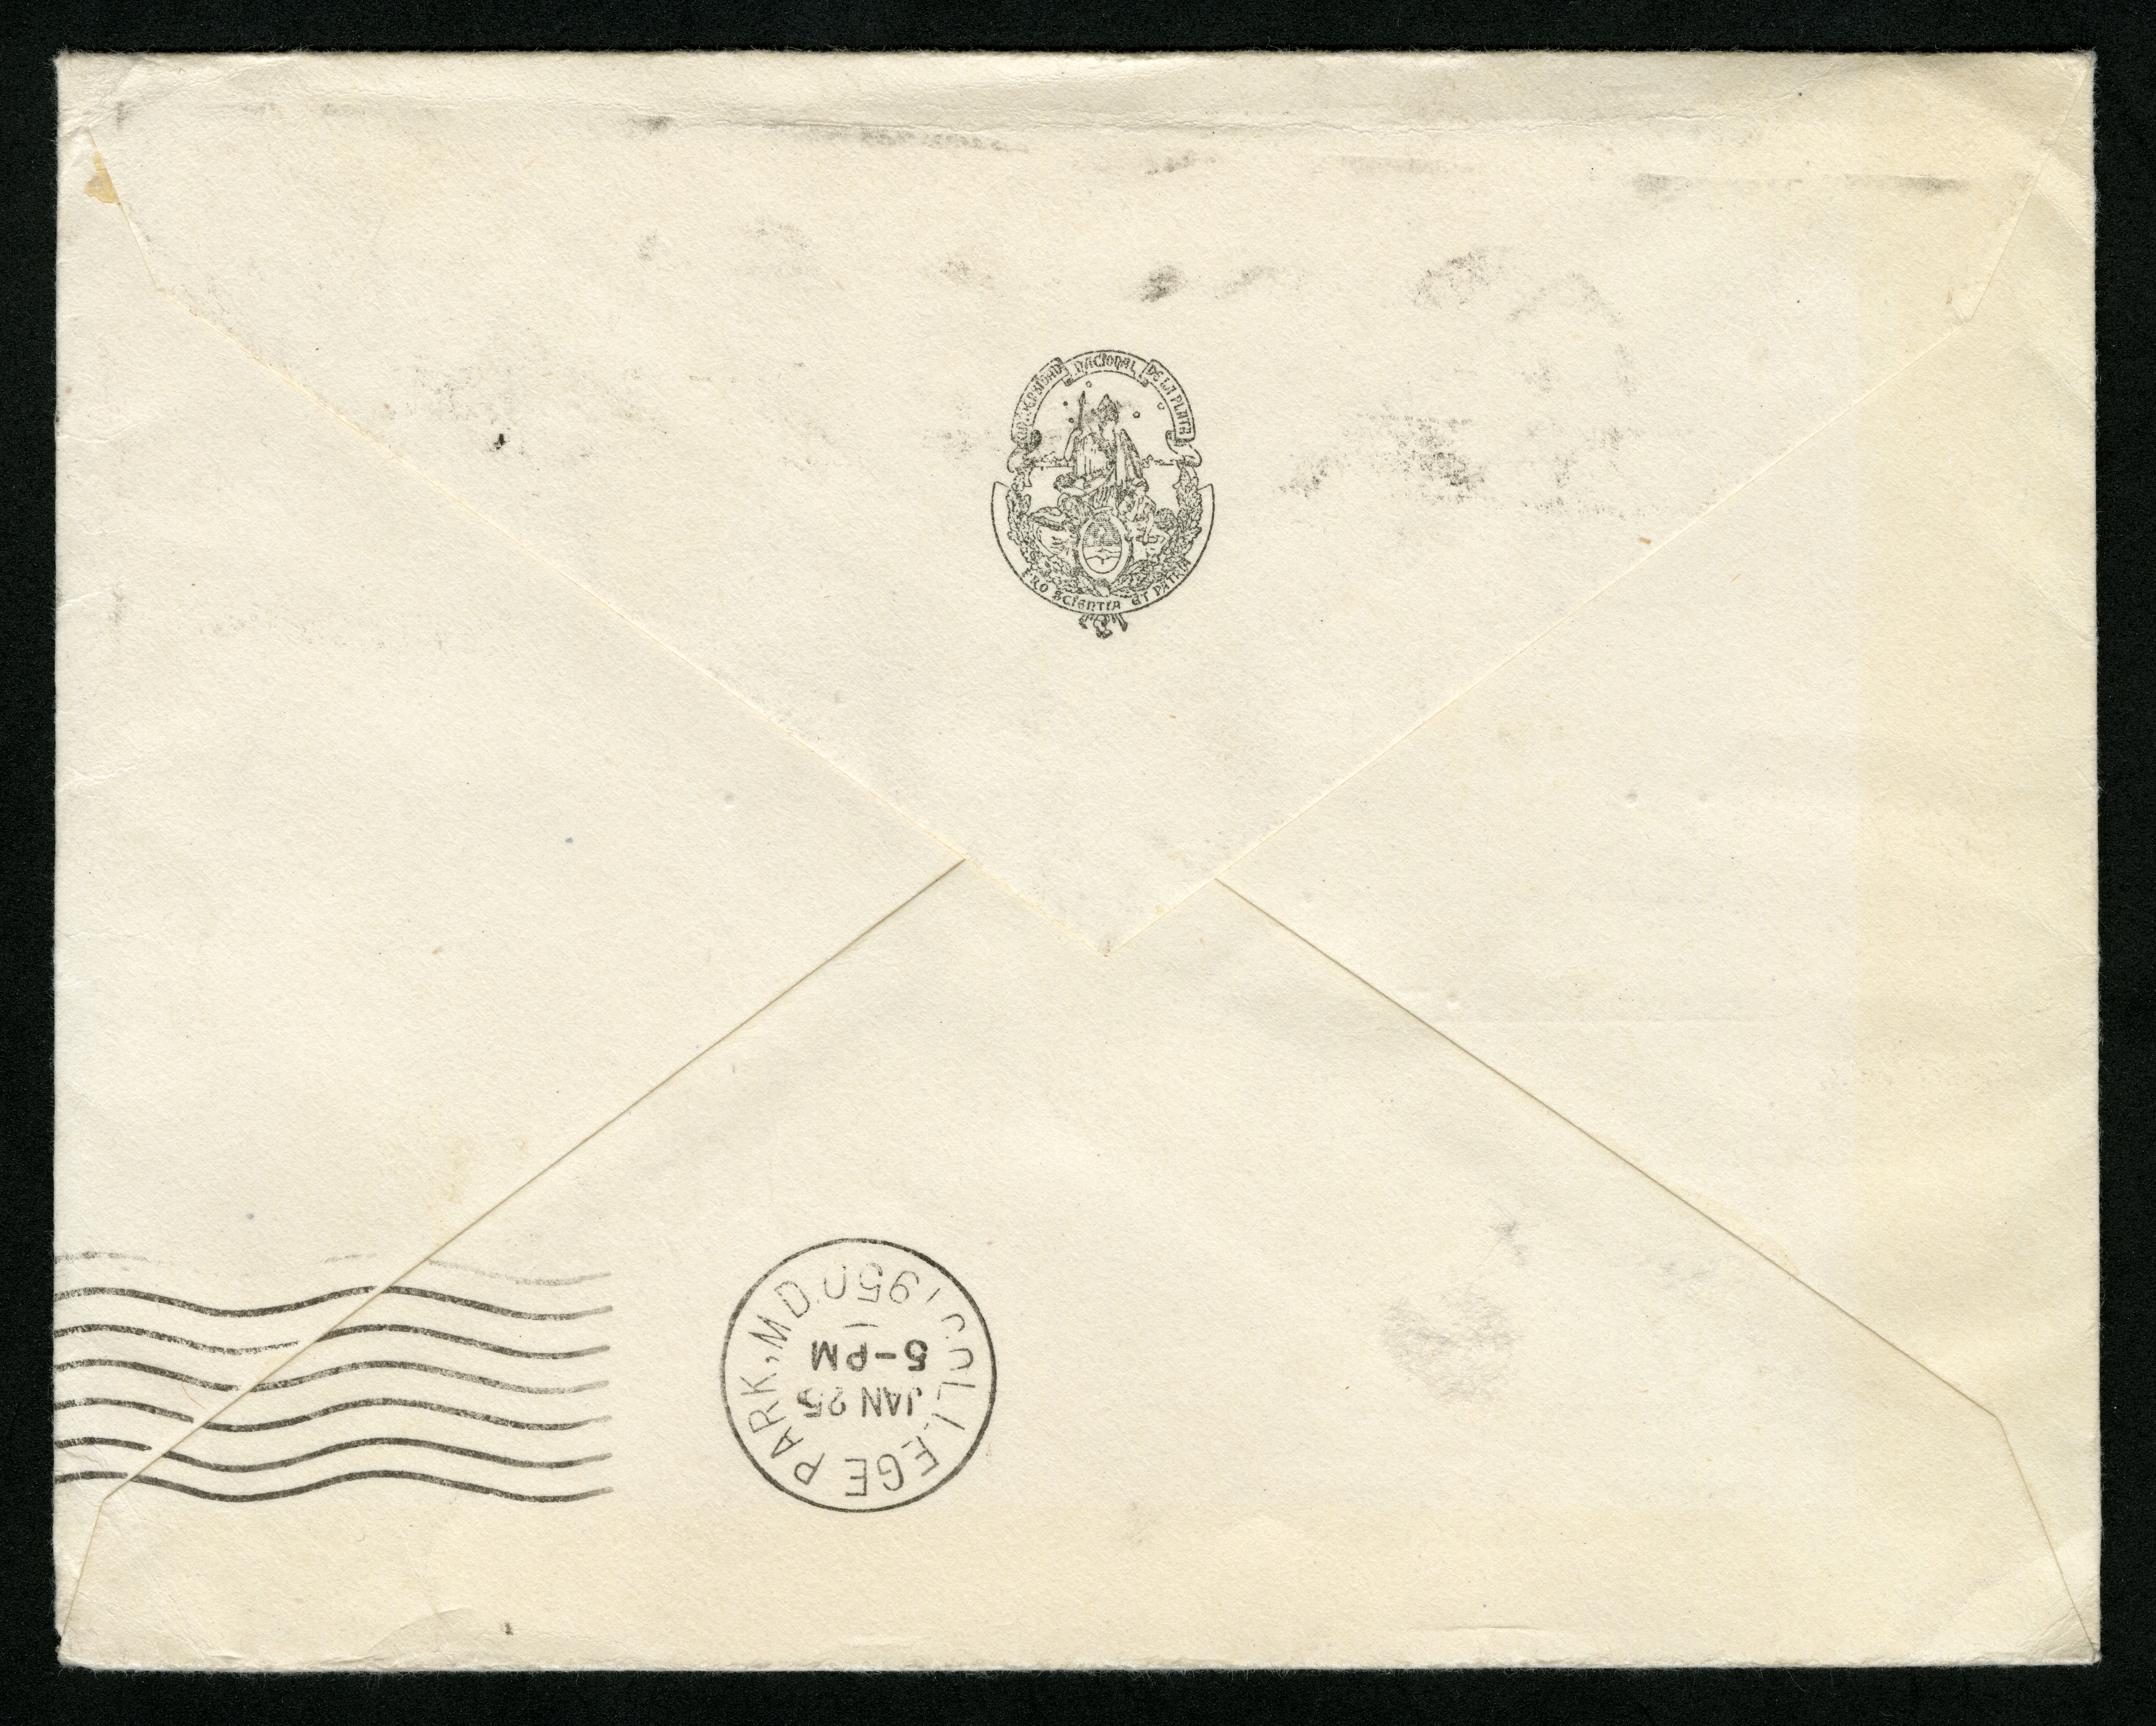 Back of Envelope for a Holiday Card from Dr. Emiliano MacDonagh to Isaac Ginsburg.